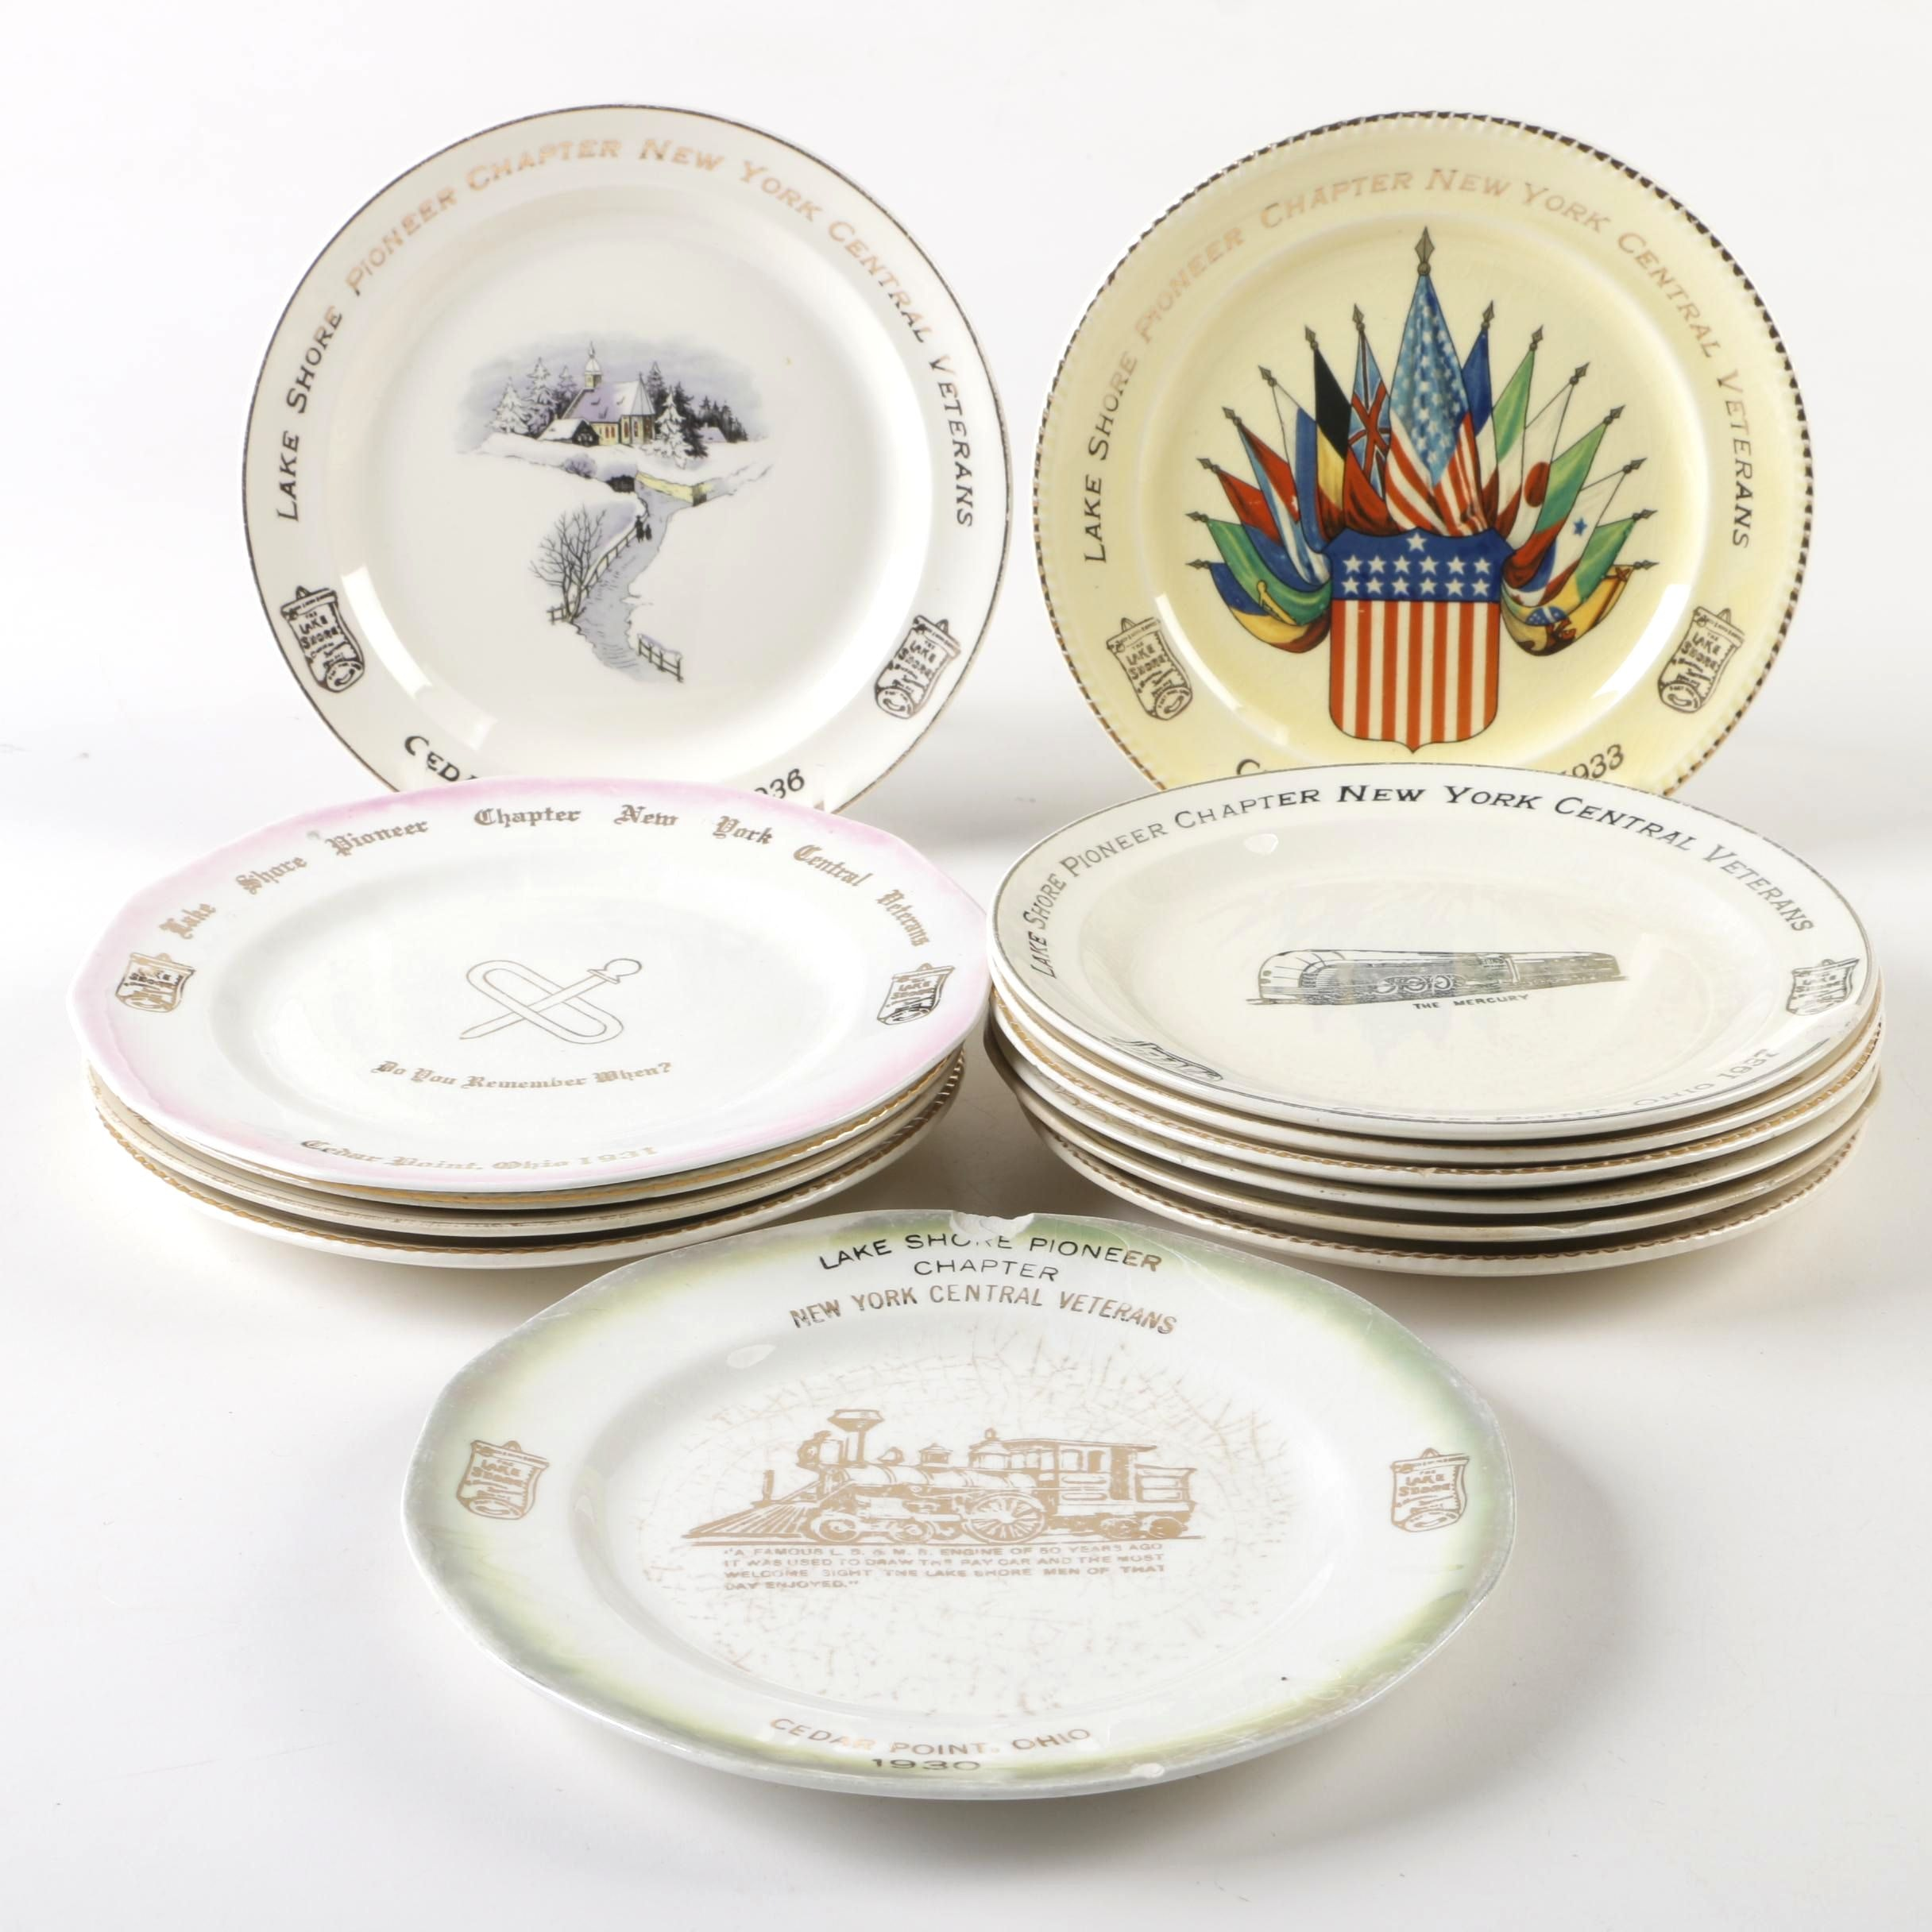 Cedar Point Commemorative Plates including The Sebring Pottery Co.